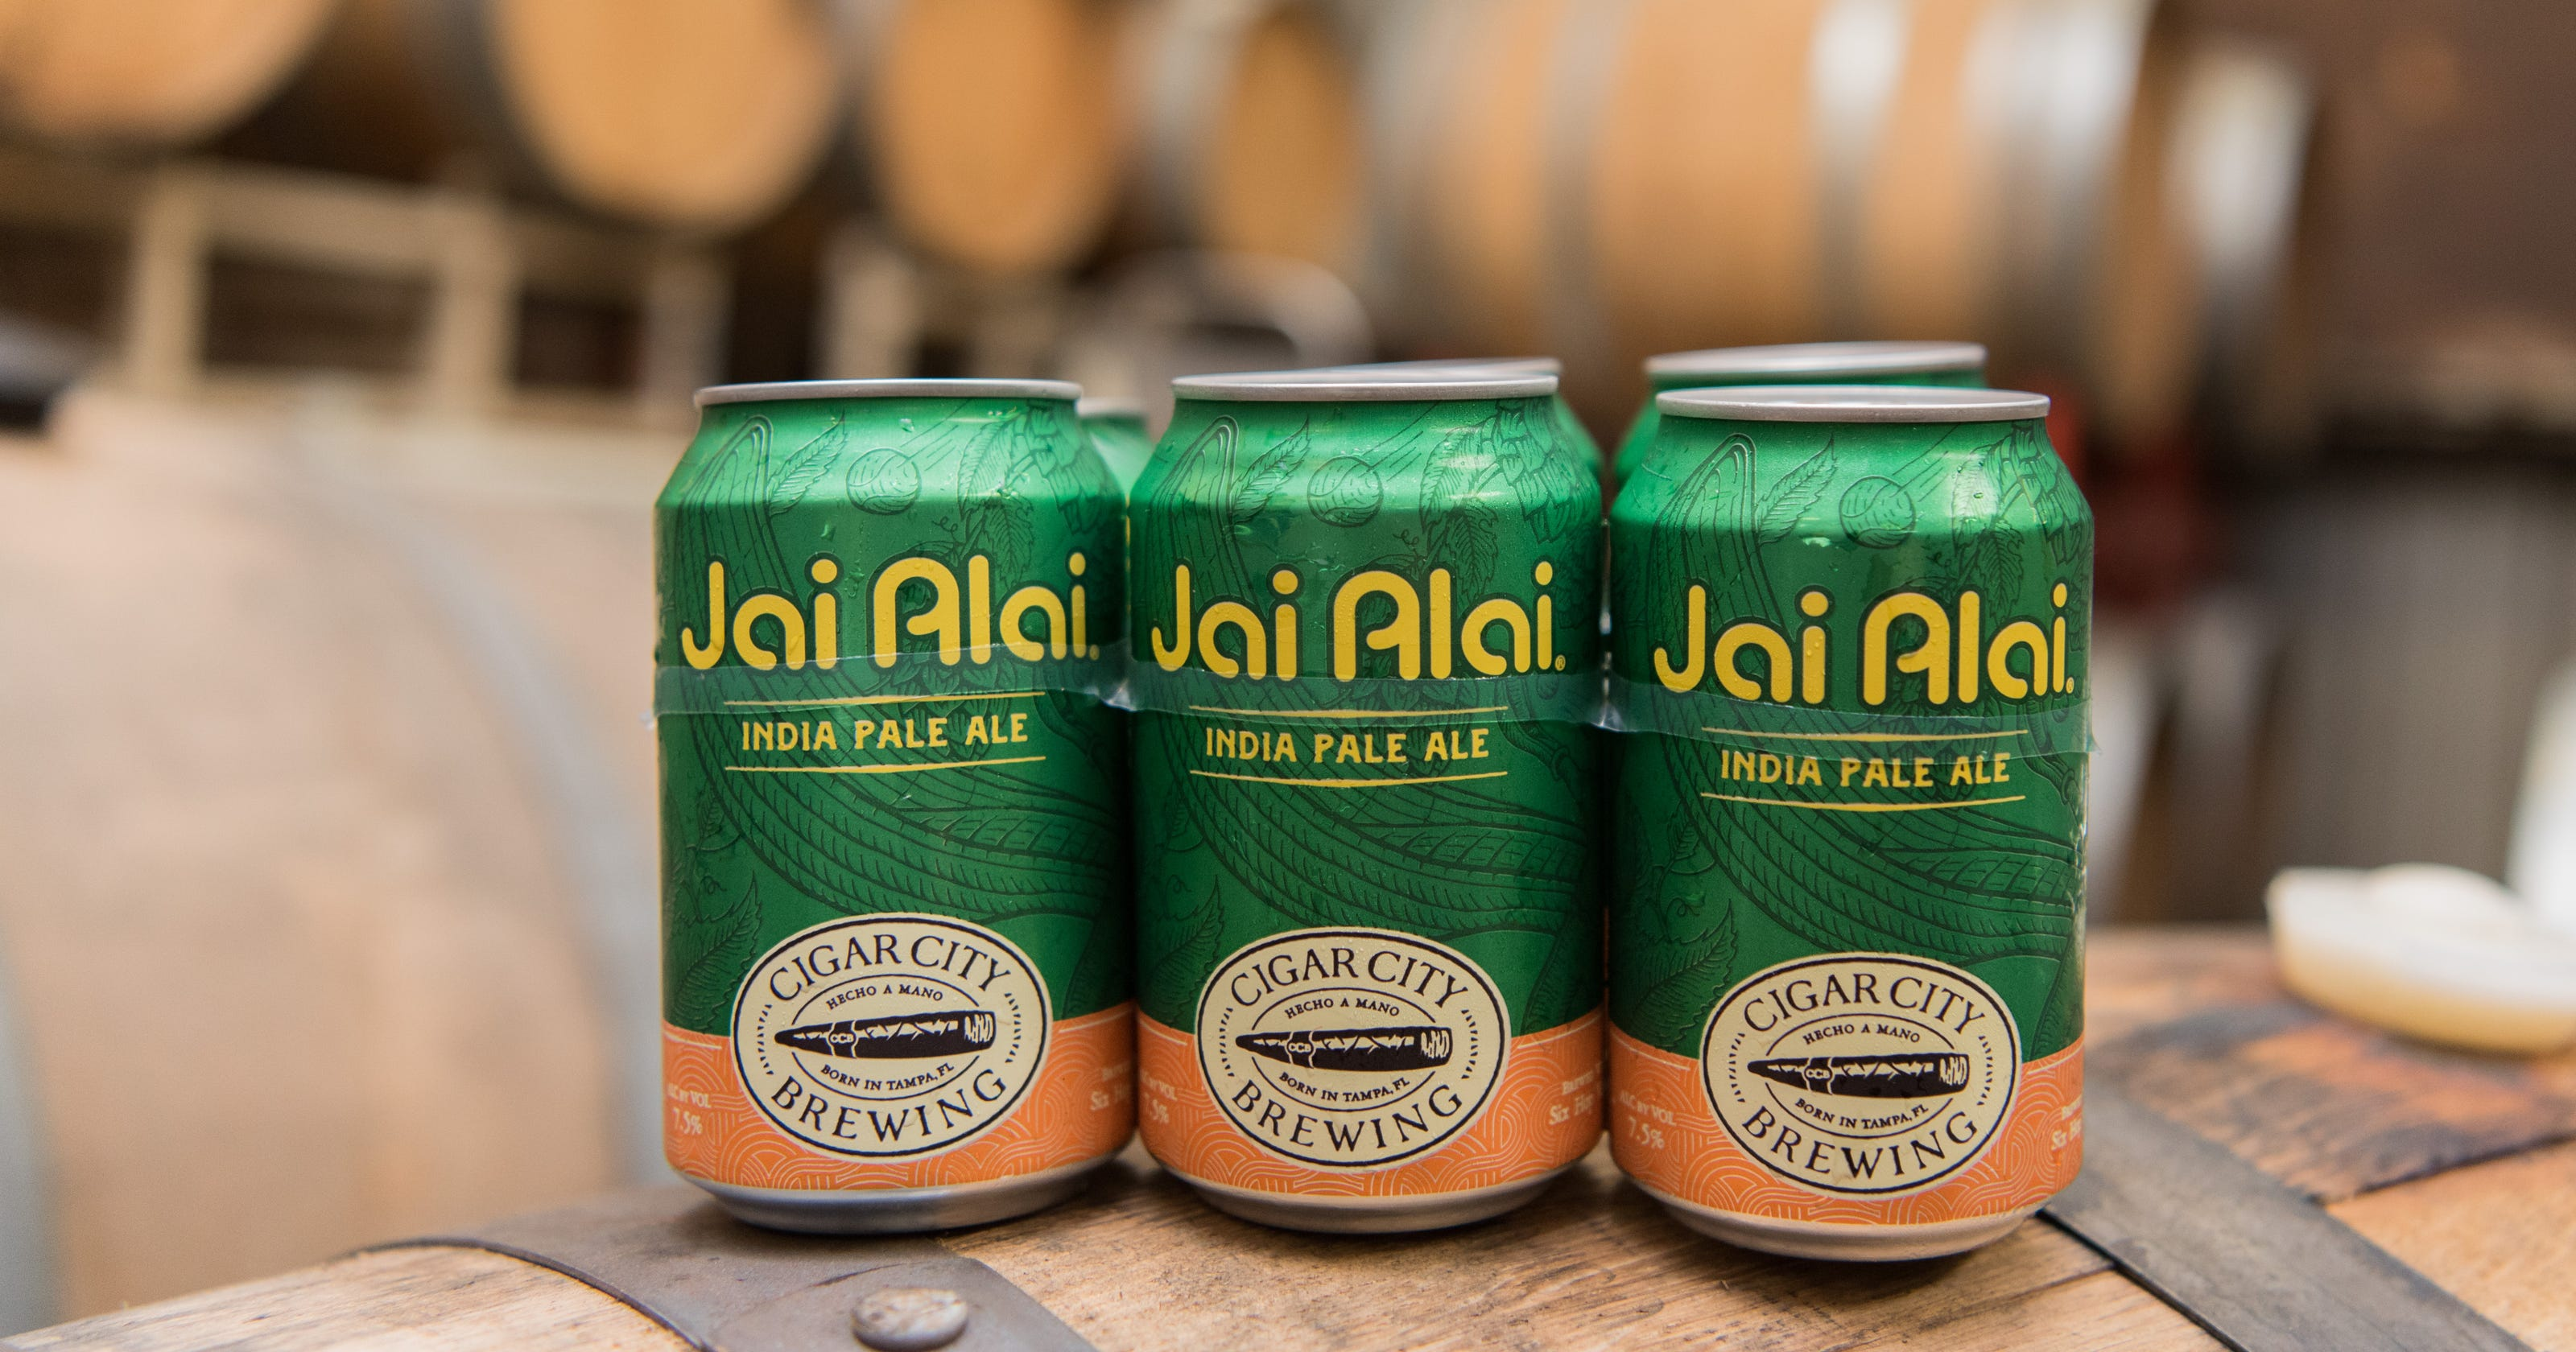 9b3eb8c671ef3 Popular Florida brewery Cigar City will introduce Jai Alai to Michigan